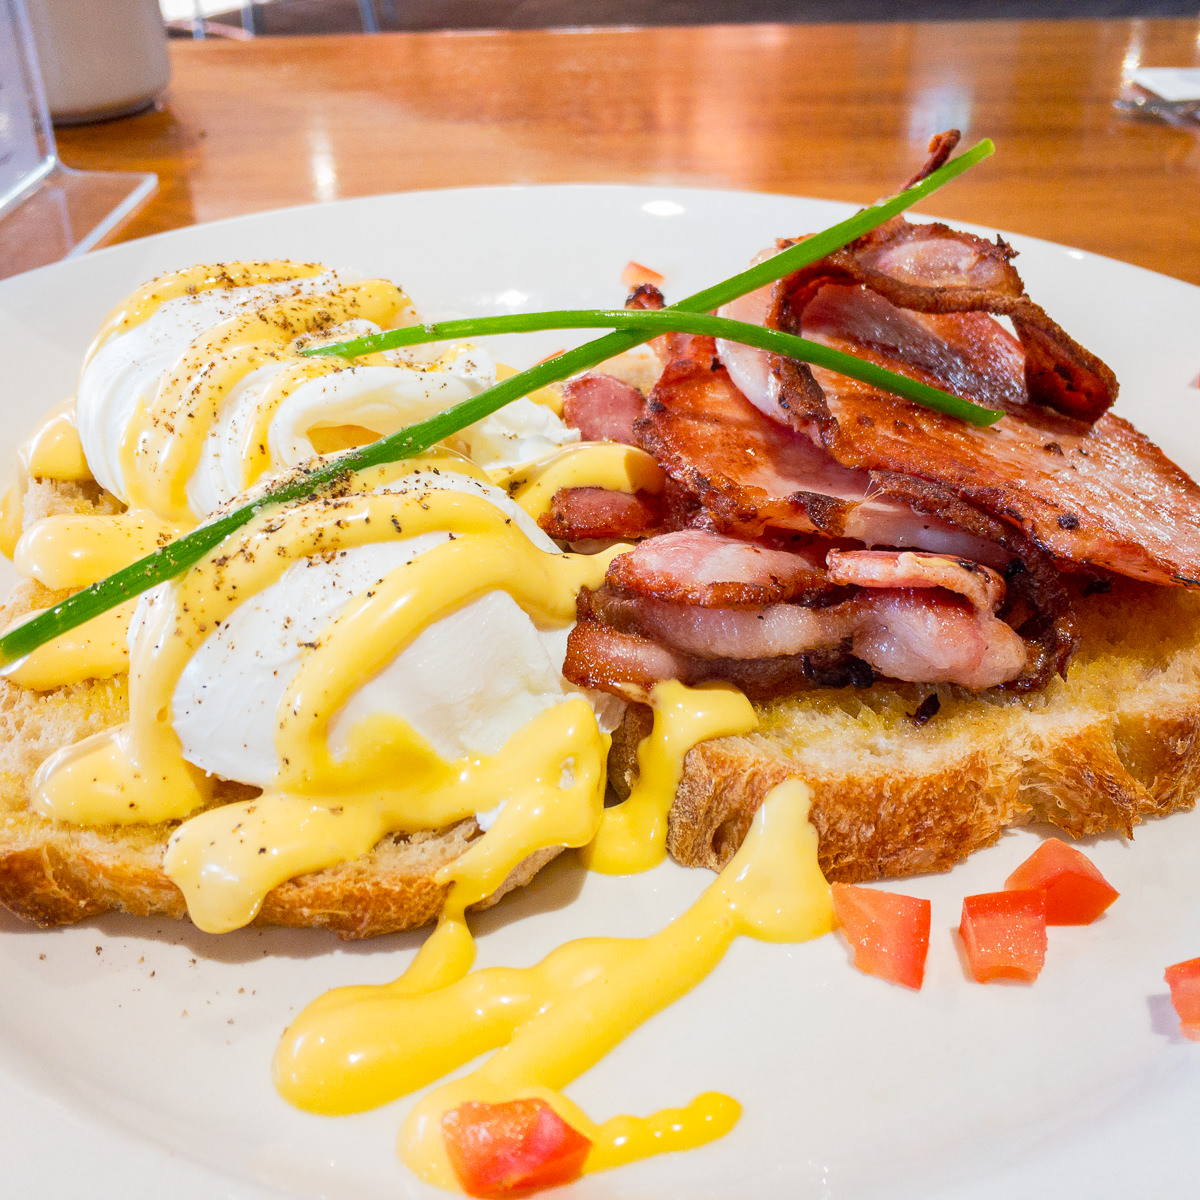 Bacon and eggs with Hollandaise sauce on Sourdough Gary Lum